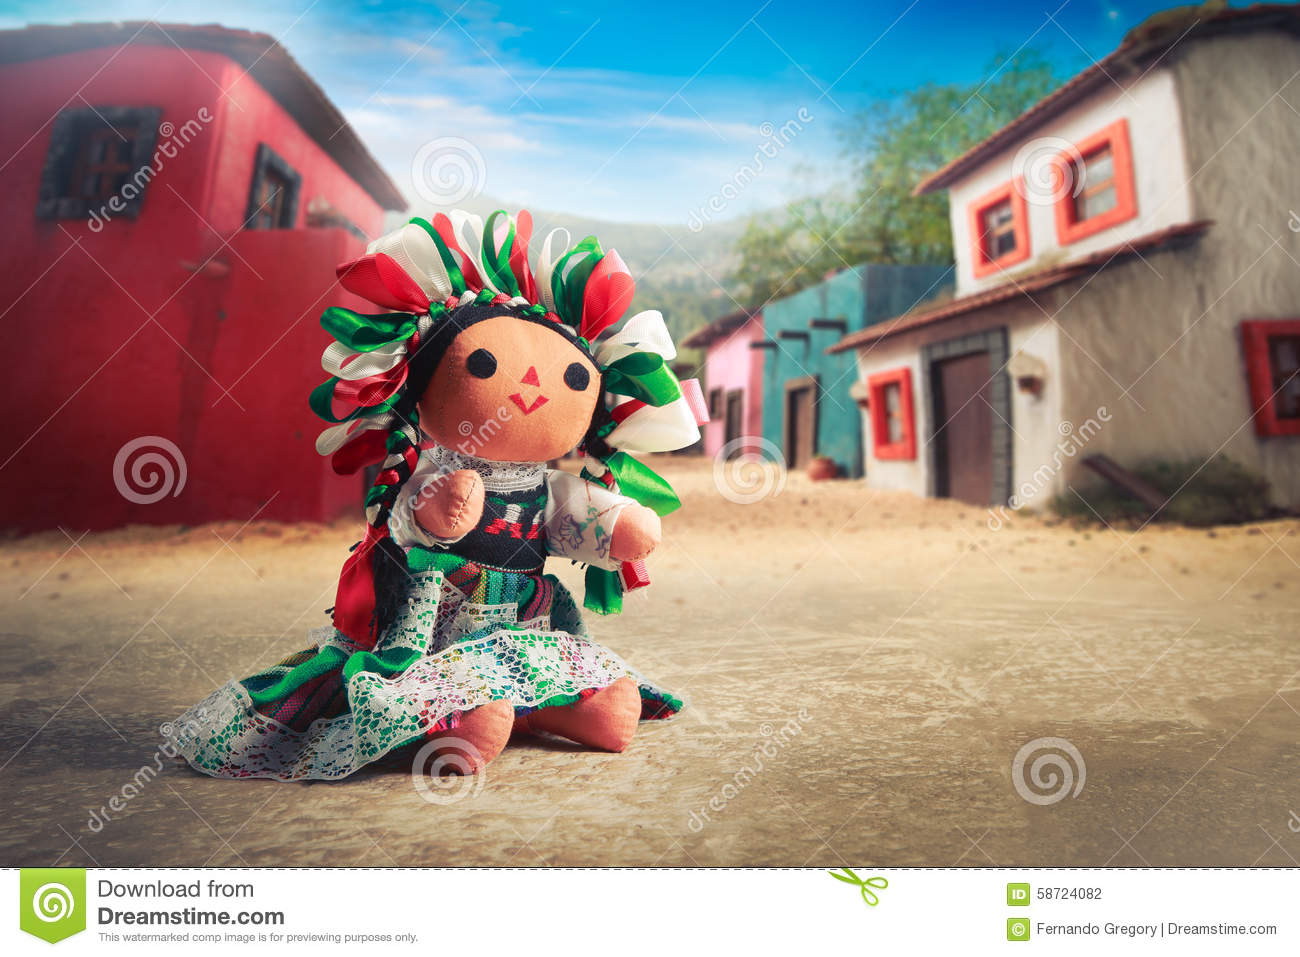 Cute Girl Doll Wallpaper Hd Mexican Rag Doll In A Traditional Dress On A Mexican